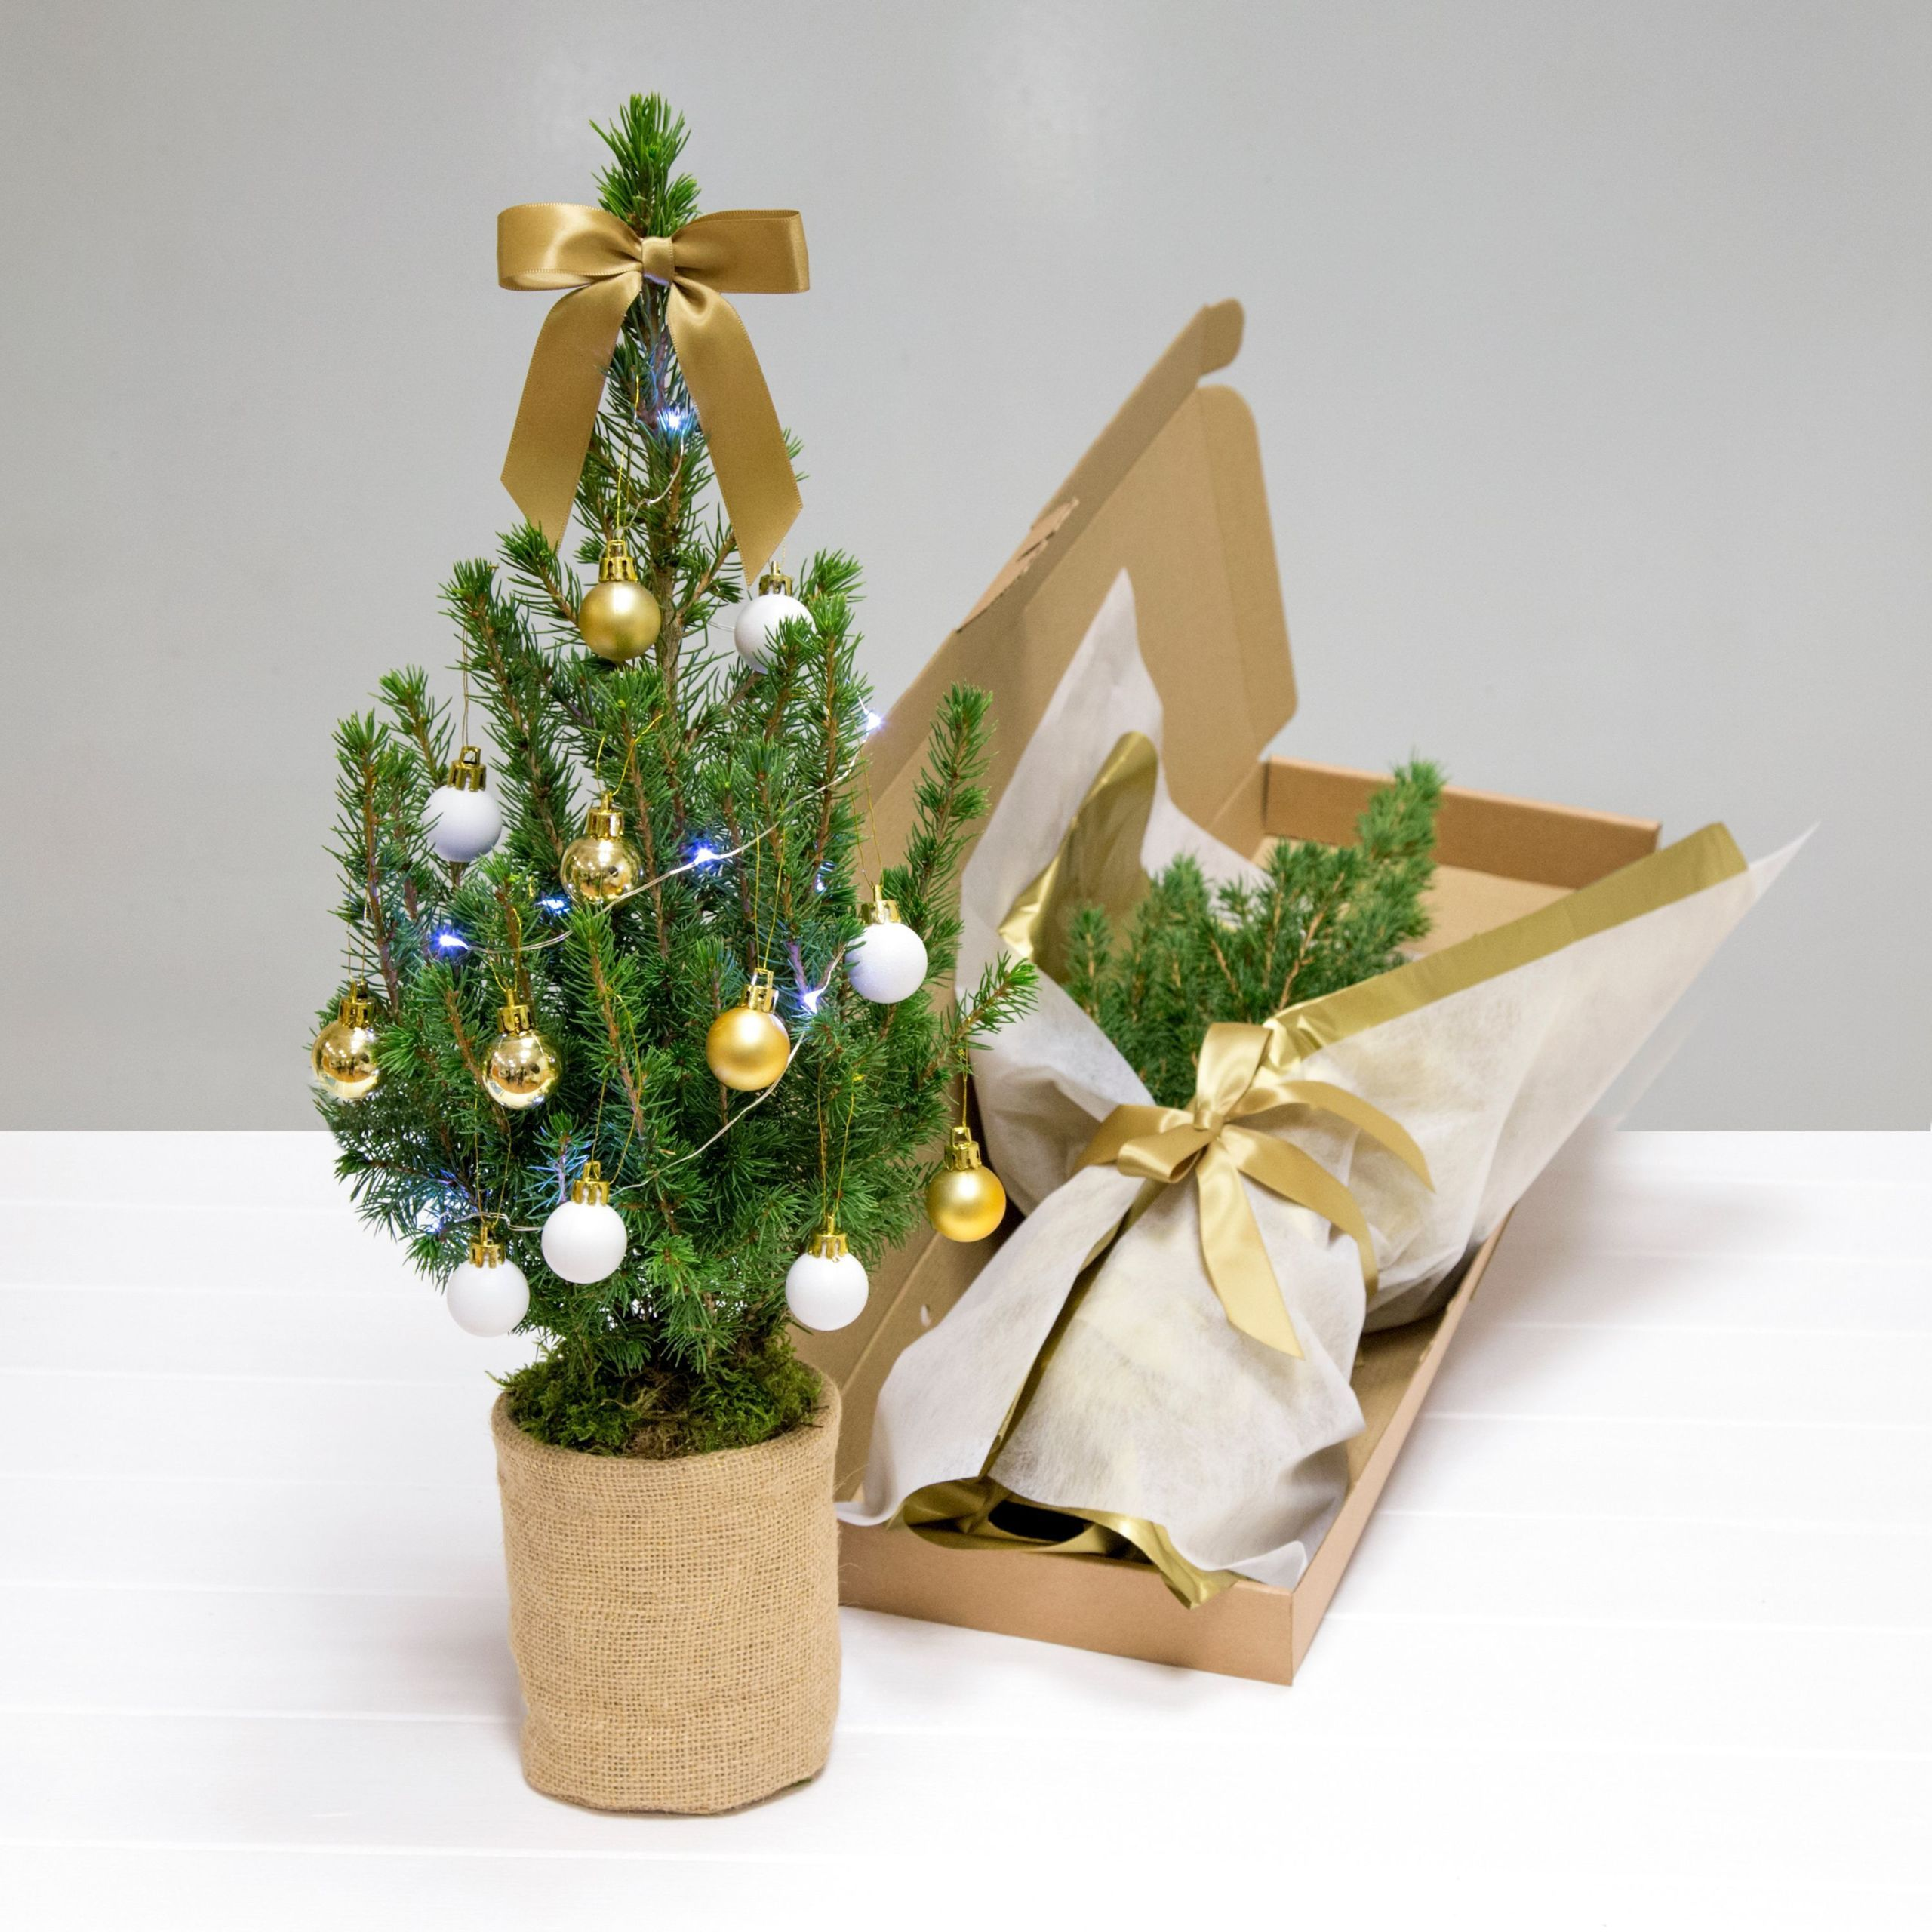 This real Christmas tree fits through your letterbox